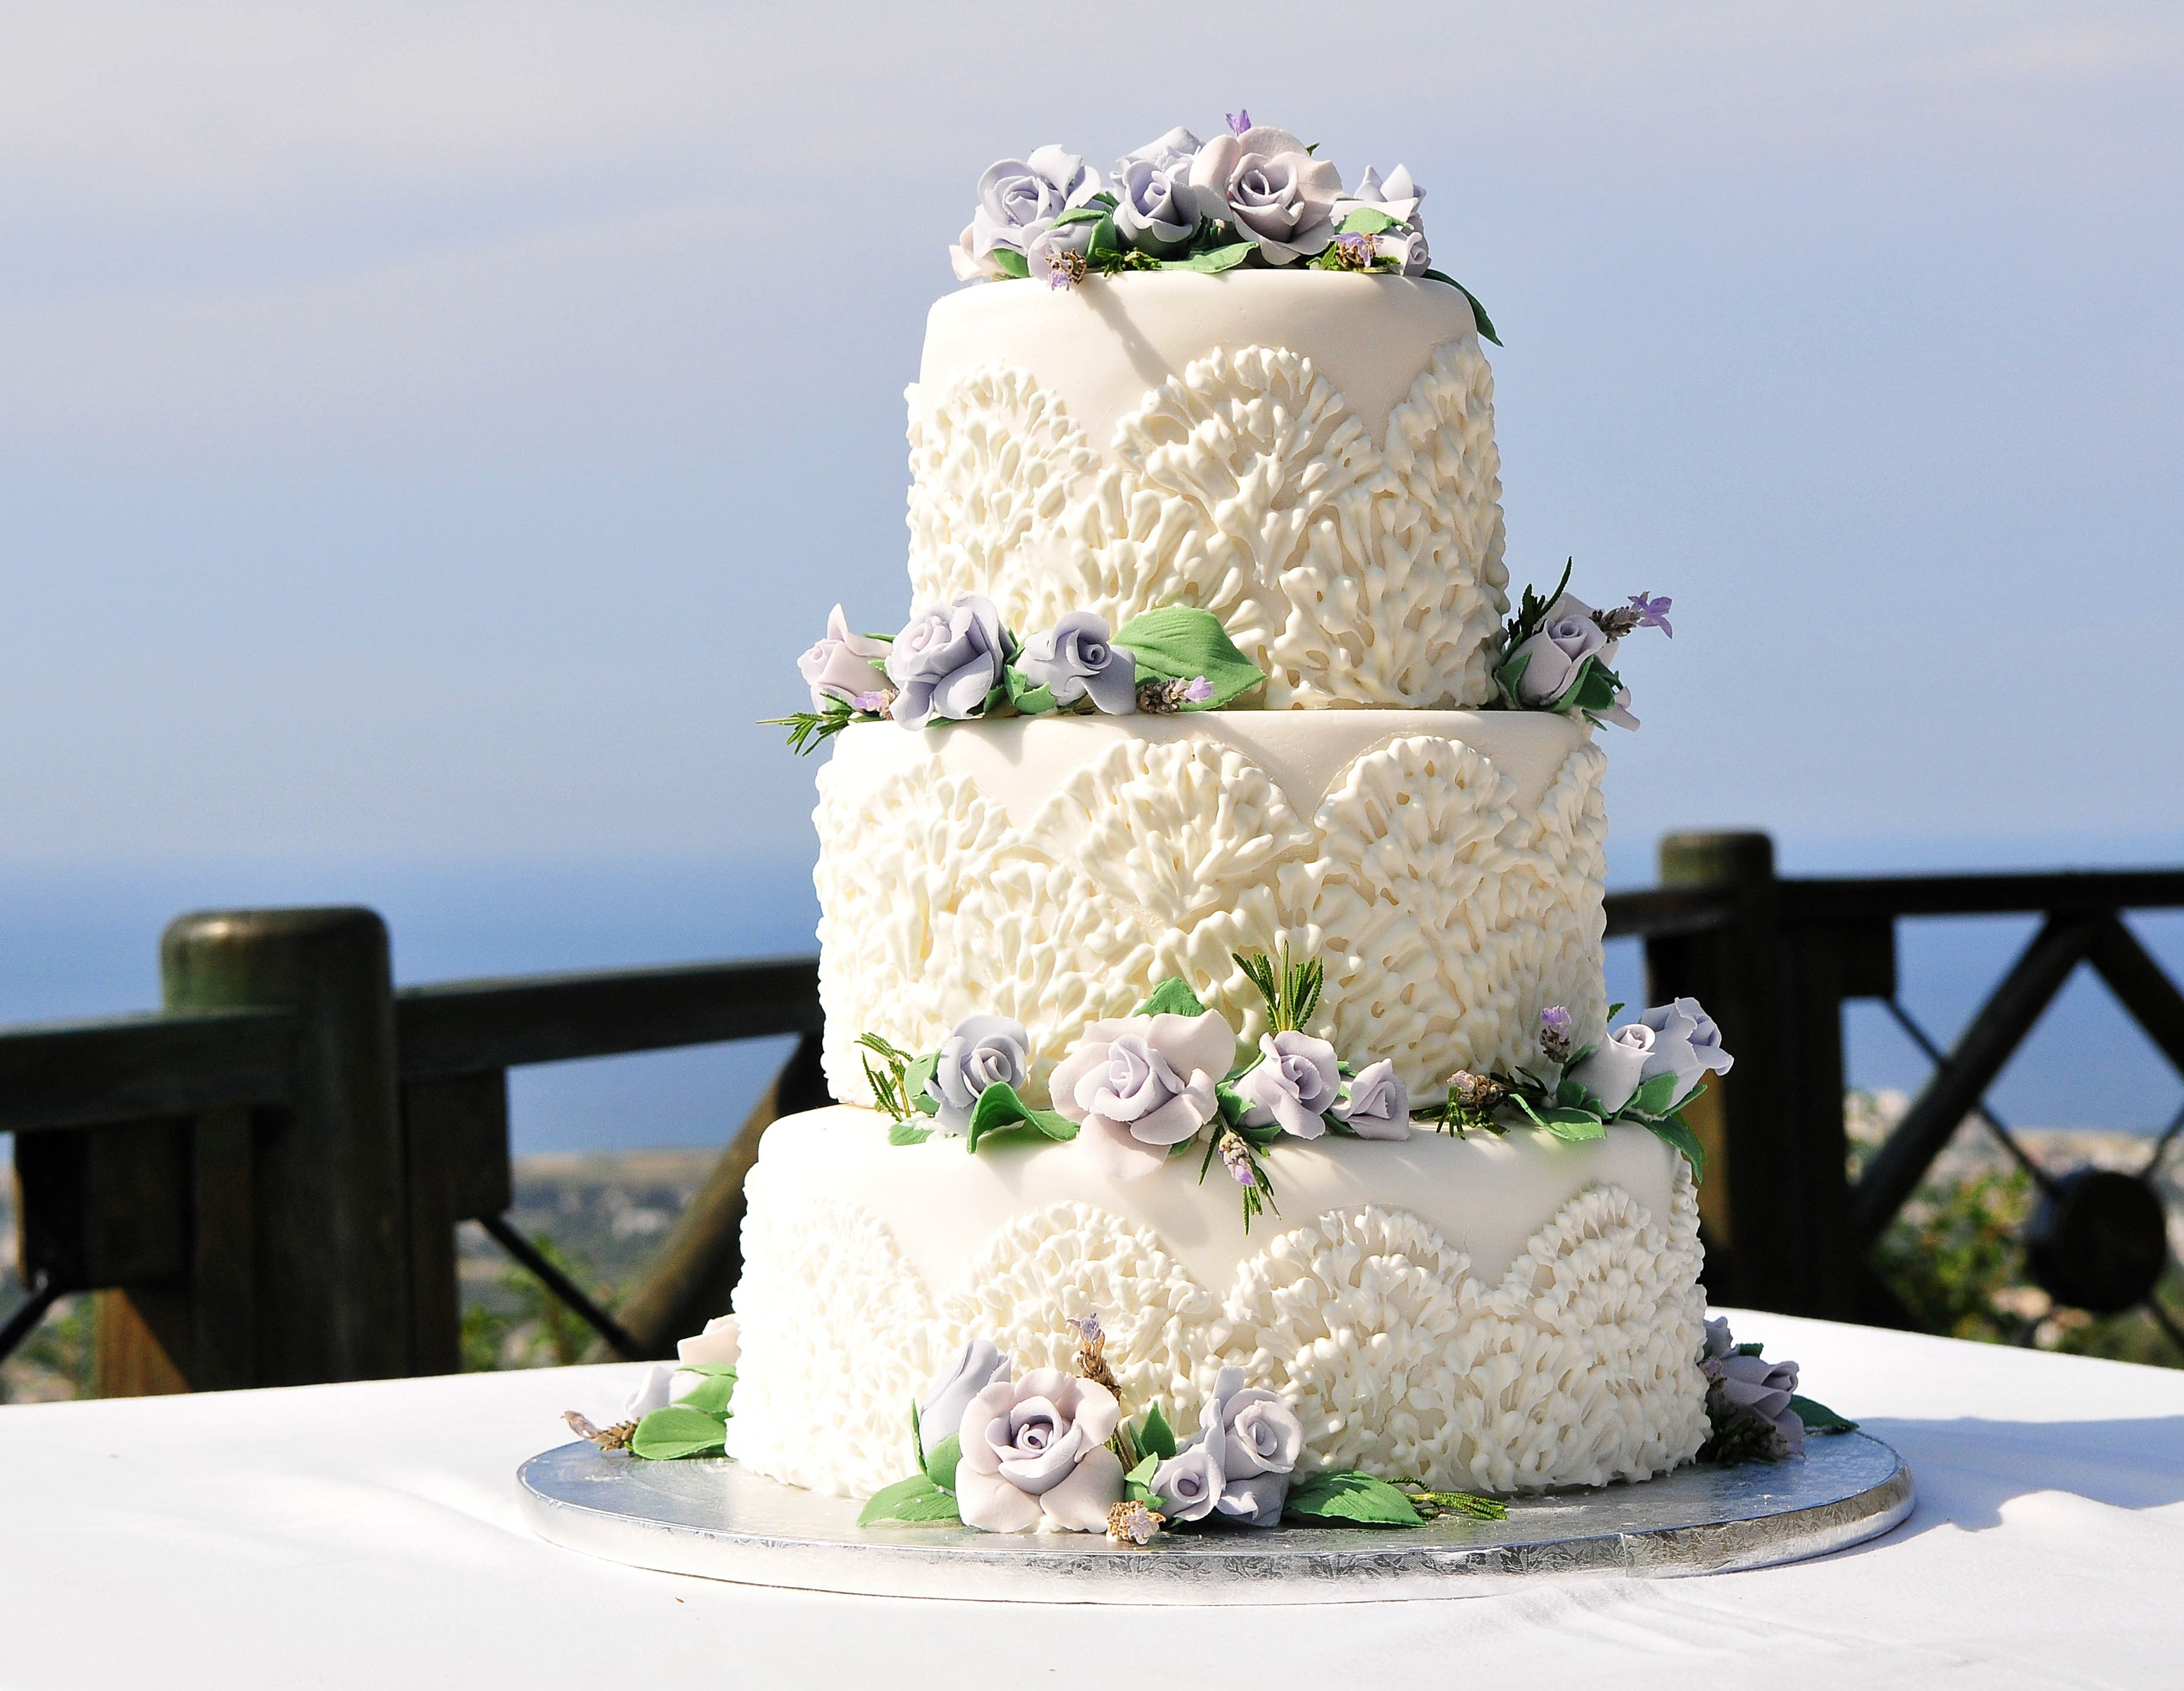 Wedding cakes in Northern Cyprus (28)